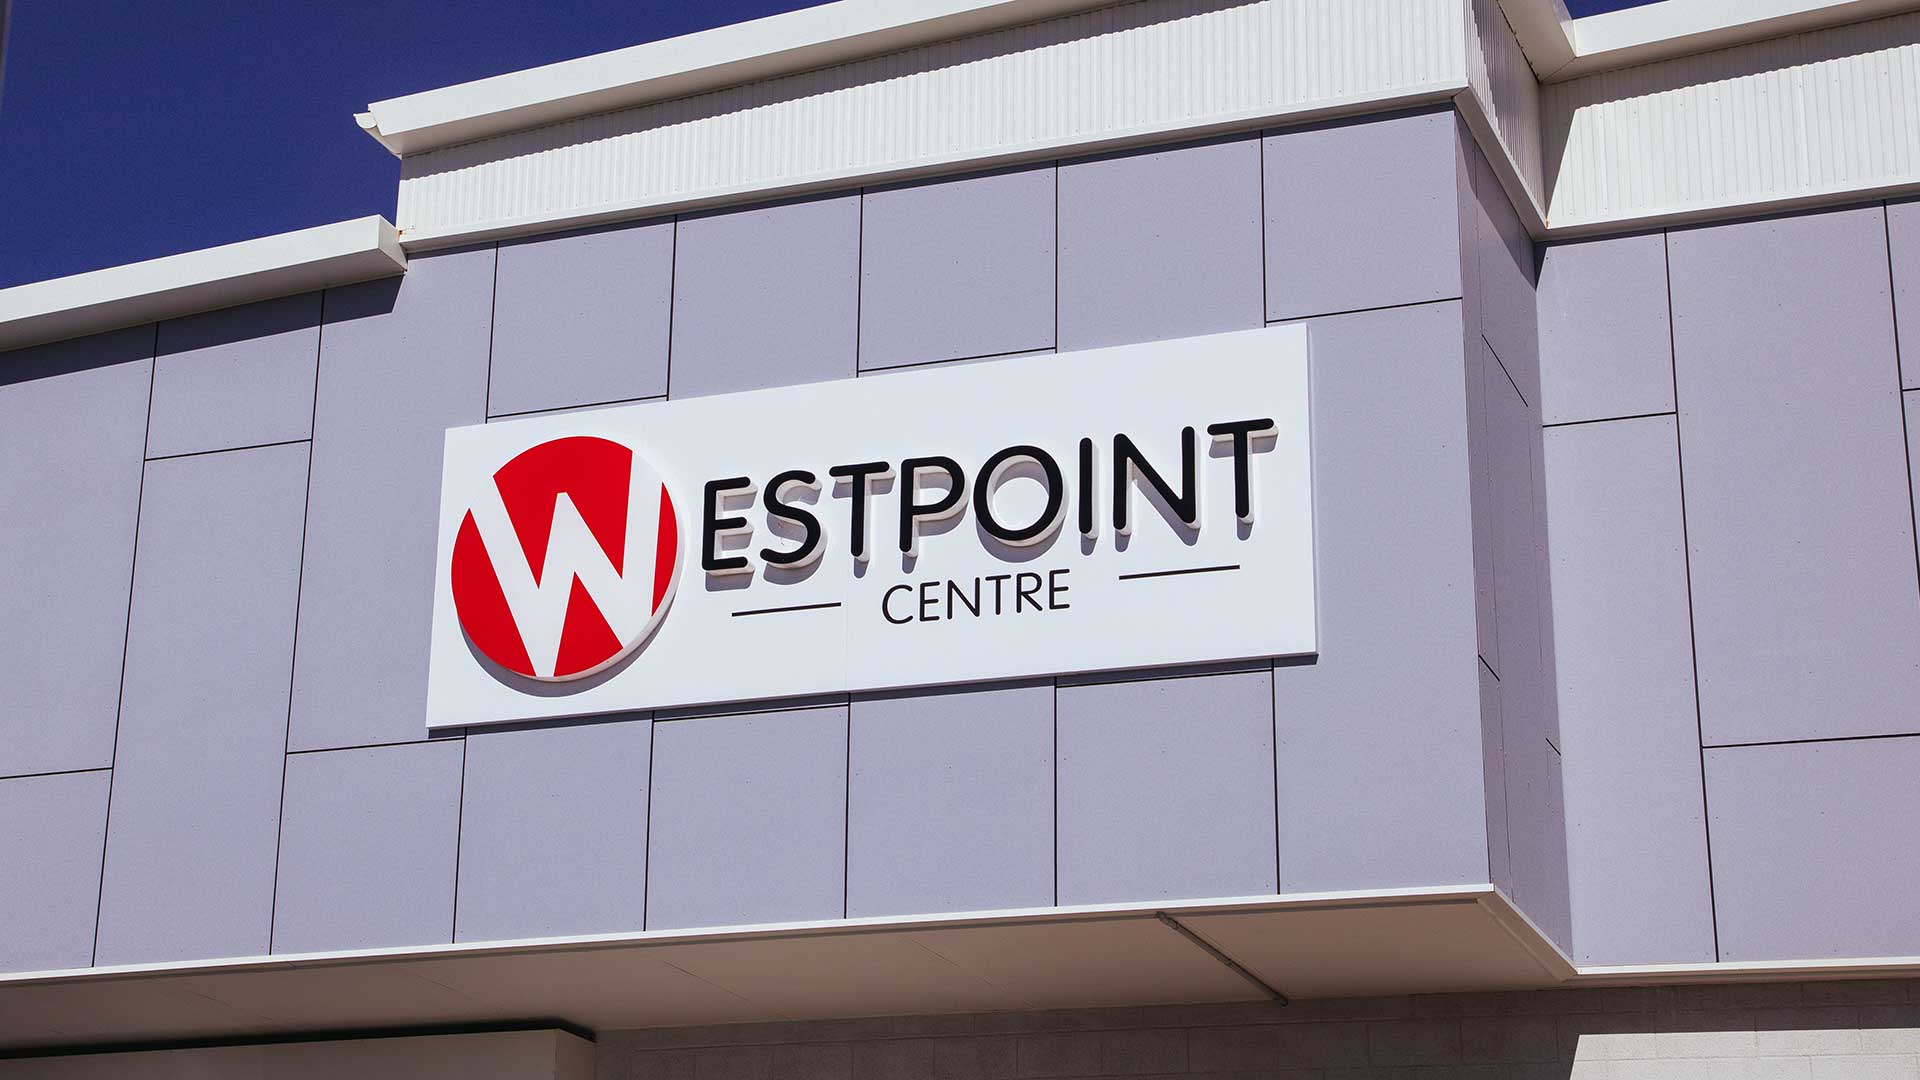 Building Logo | Westpoint Shopping Centre, West Bathurst